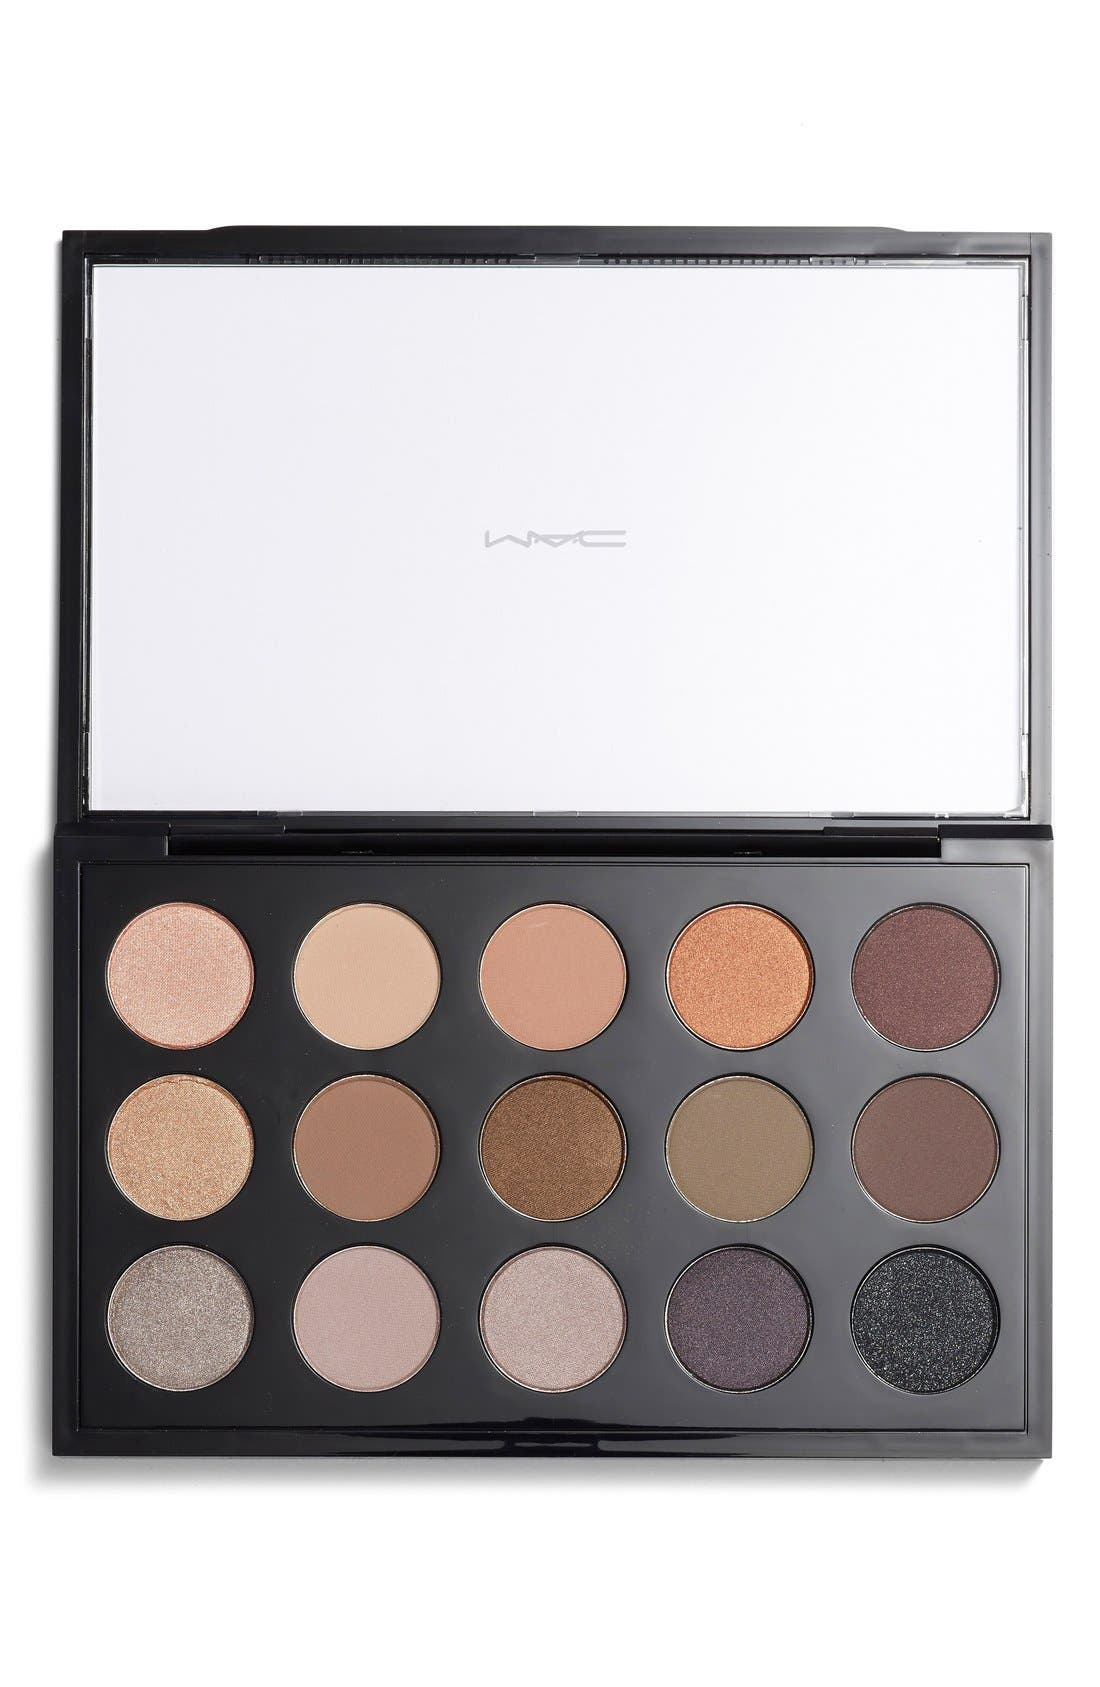 MAC Nordstrom Now Eyeshadow Palette (Nordstrom Exclusive) ($100 Value)